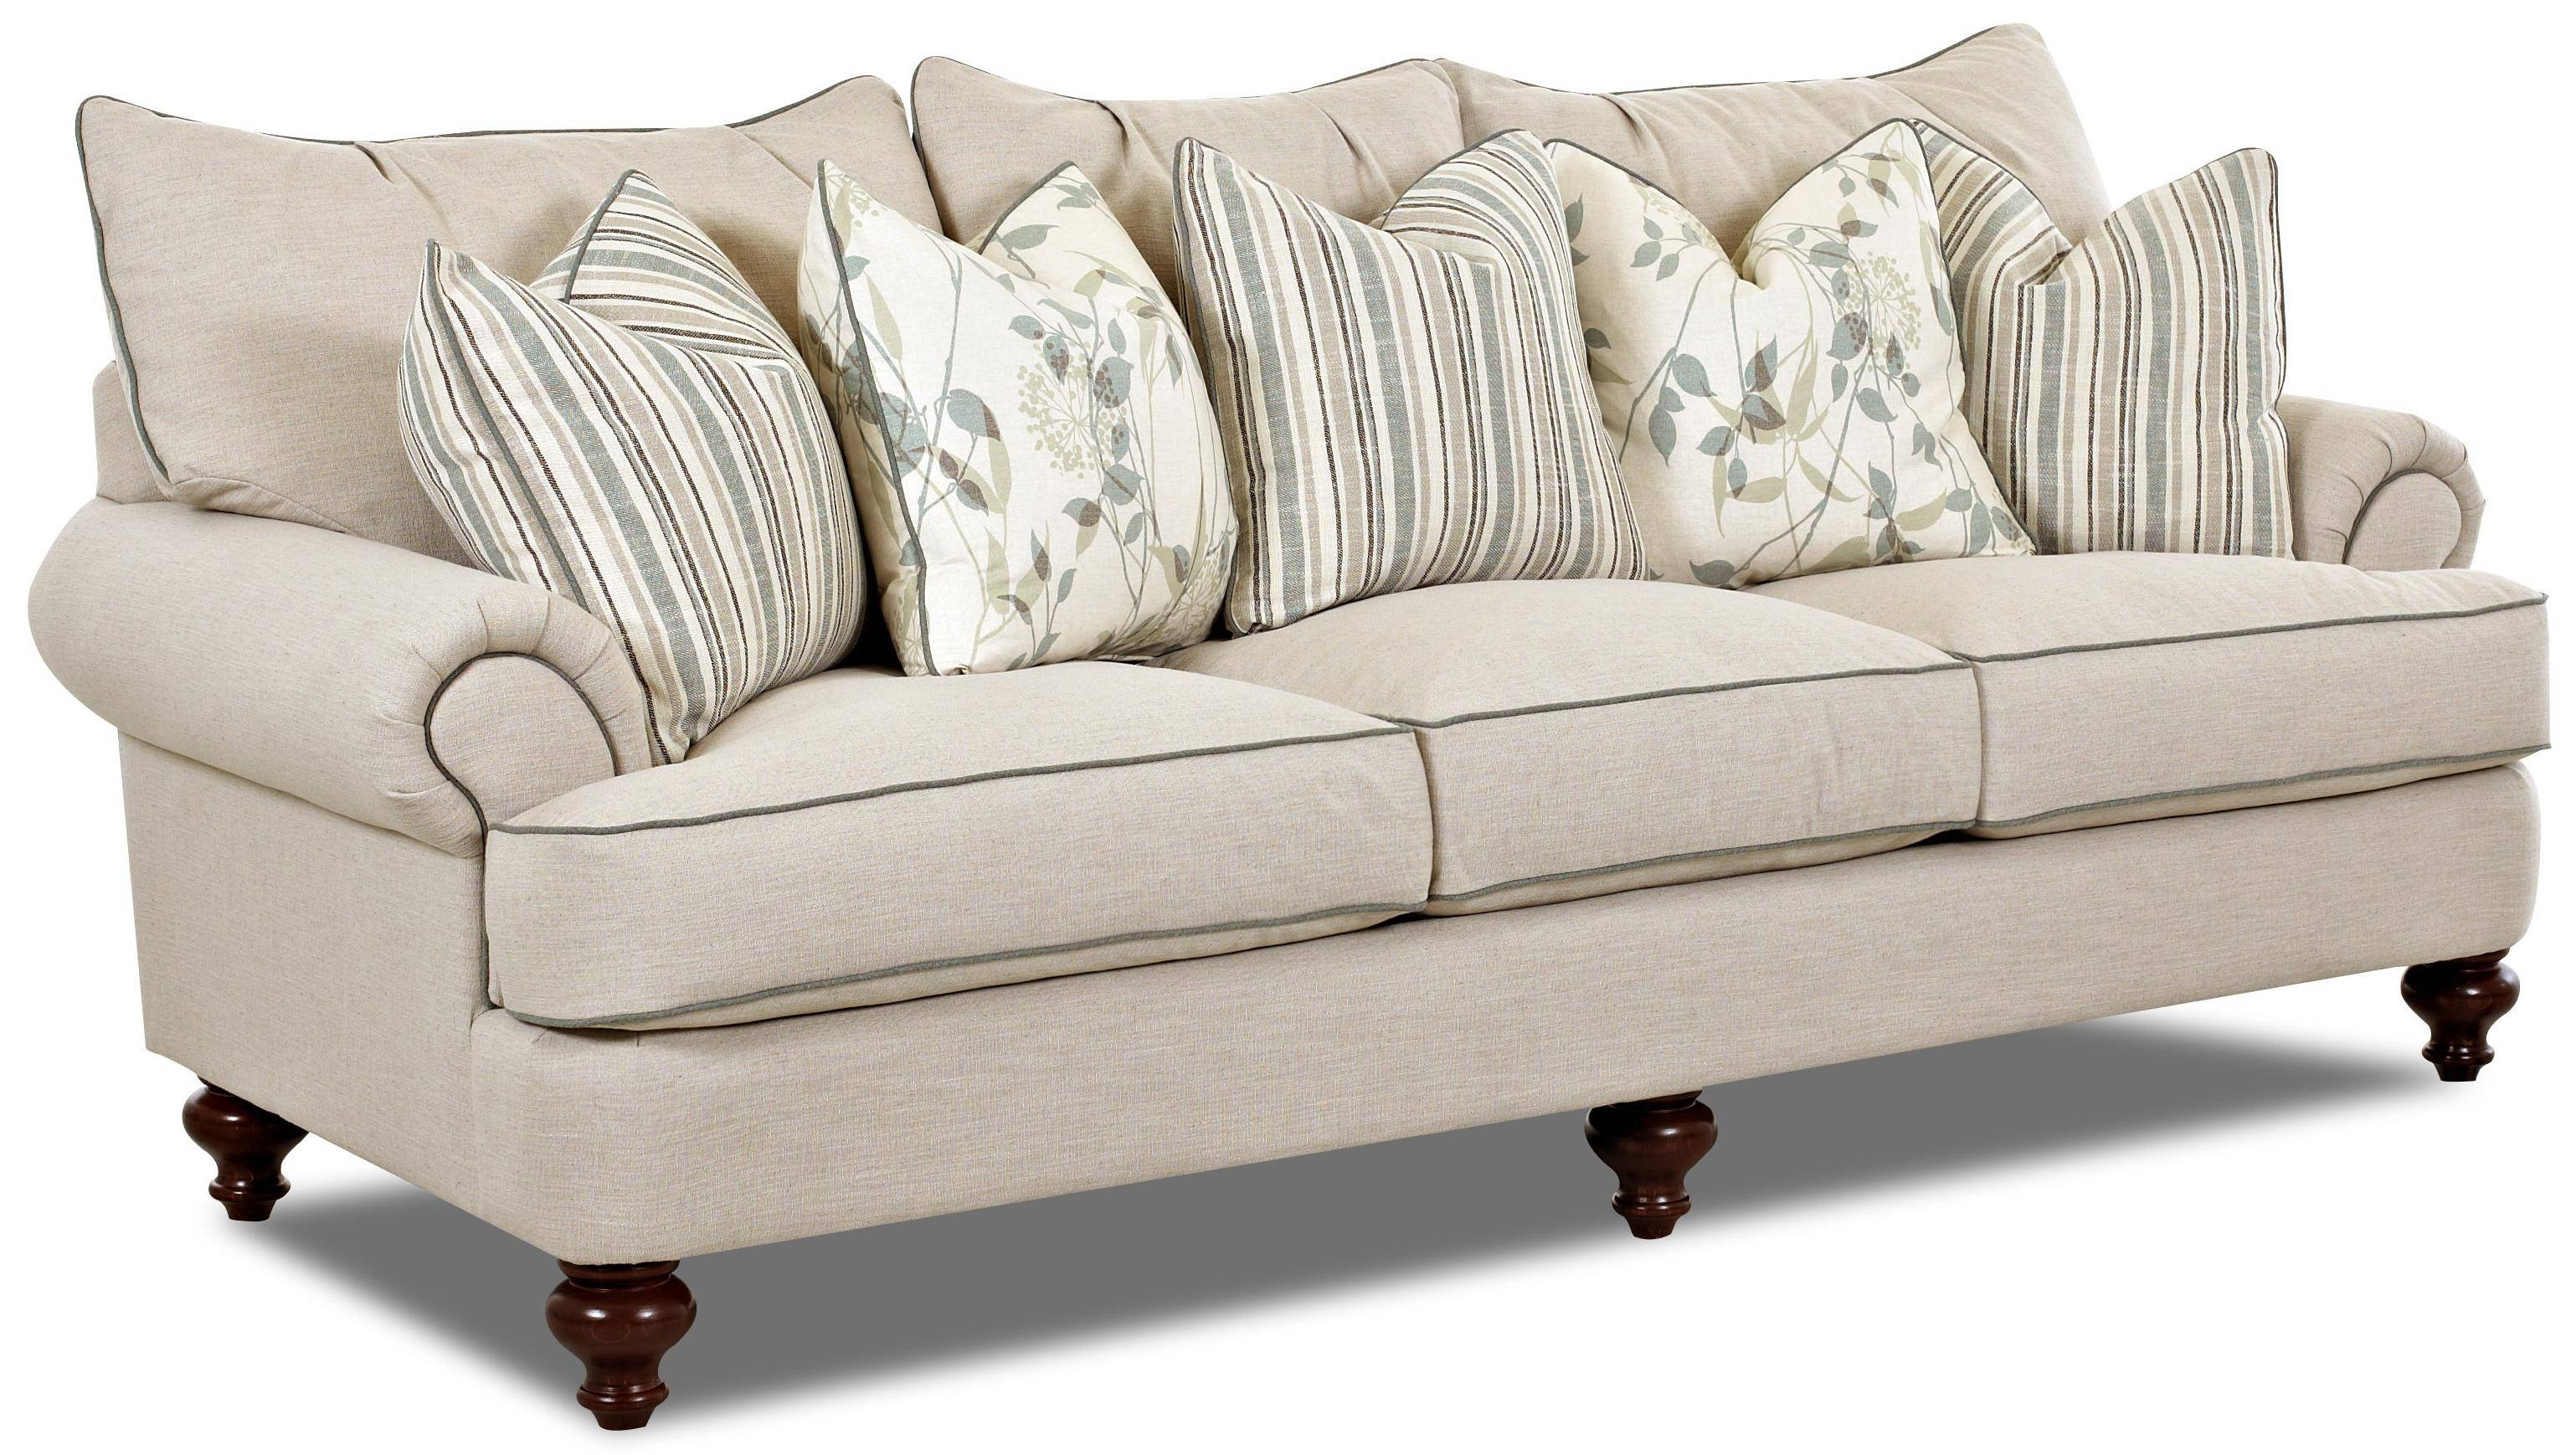 Shabby Chic Down Blend Sofaklaussner | Wolf And Gardiner Wolf throughout Shabby Chic Sofa (Image 15 of 30)